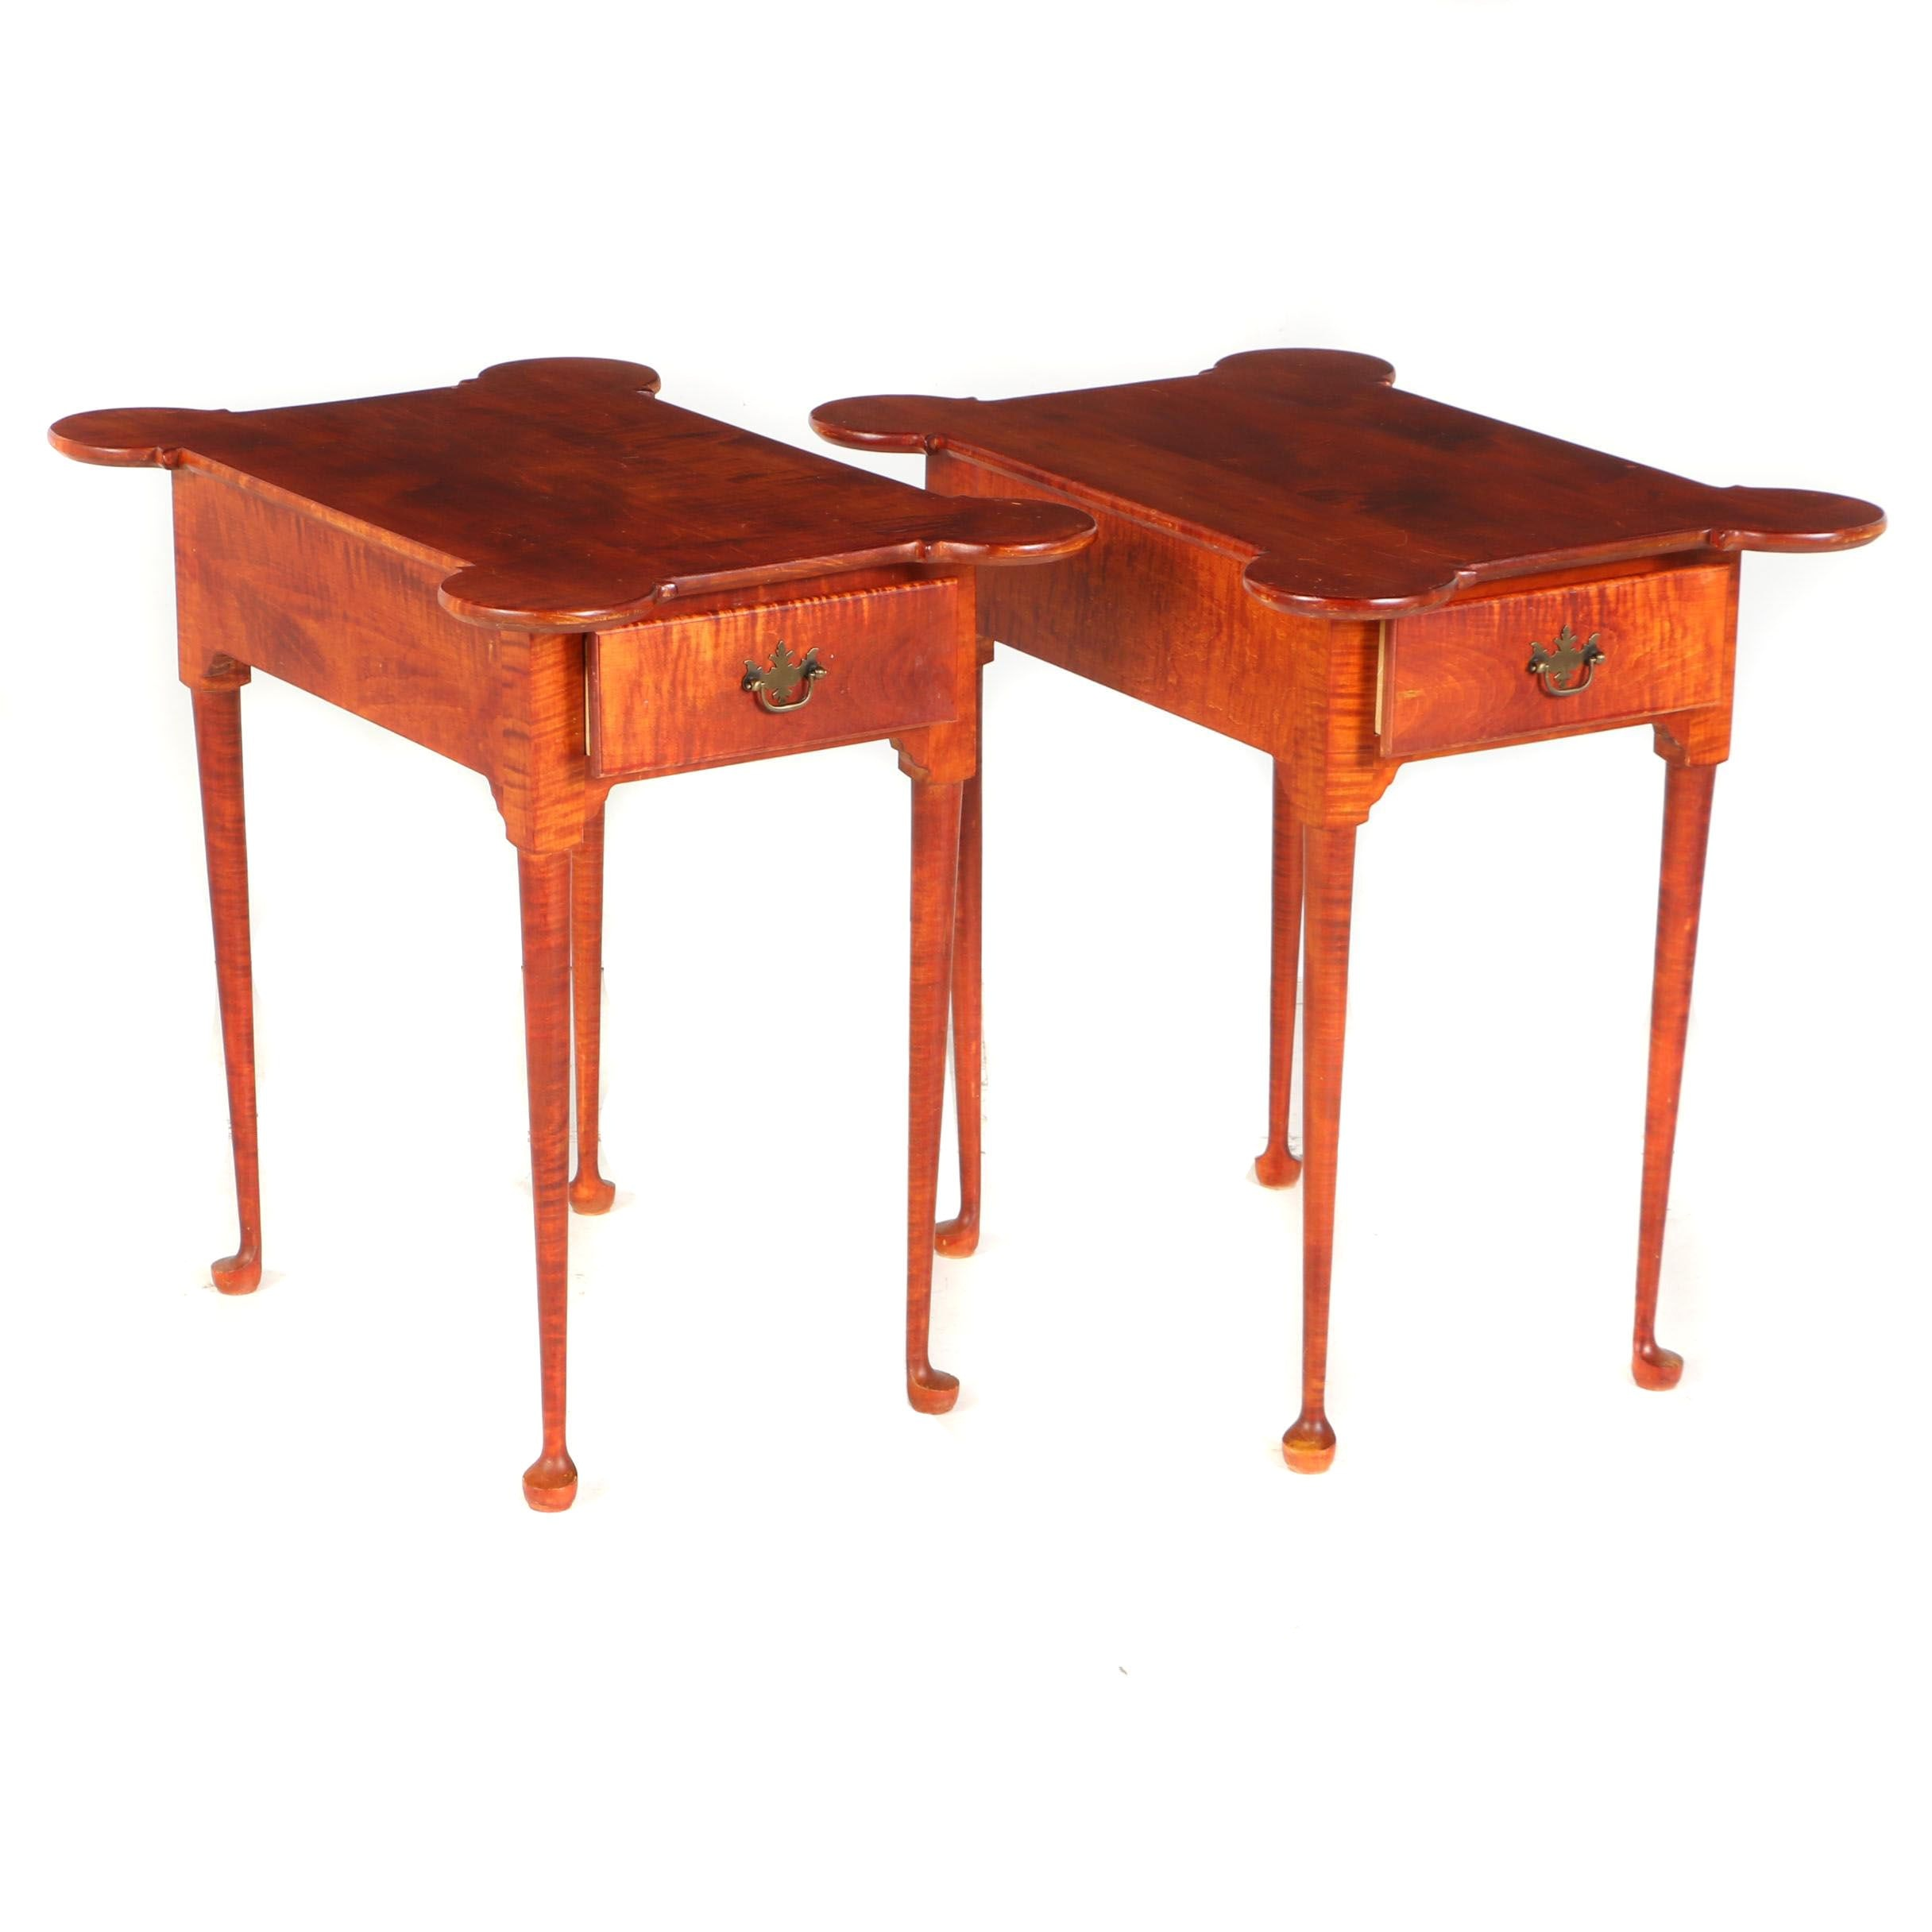 Pair of Contemporary Queen Anne Style Tiger Maple Bench-Made Side Tables